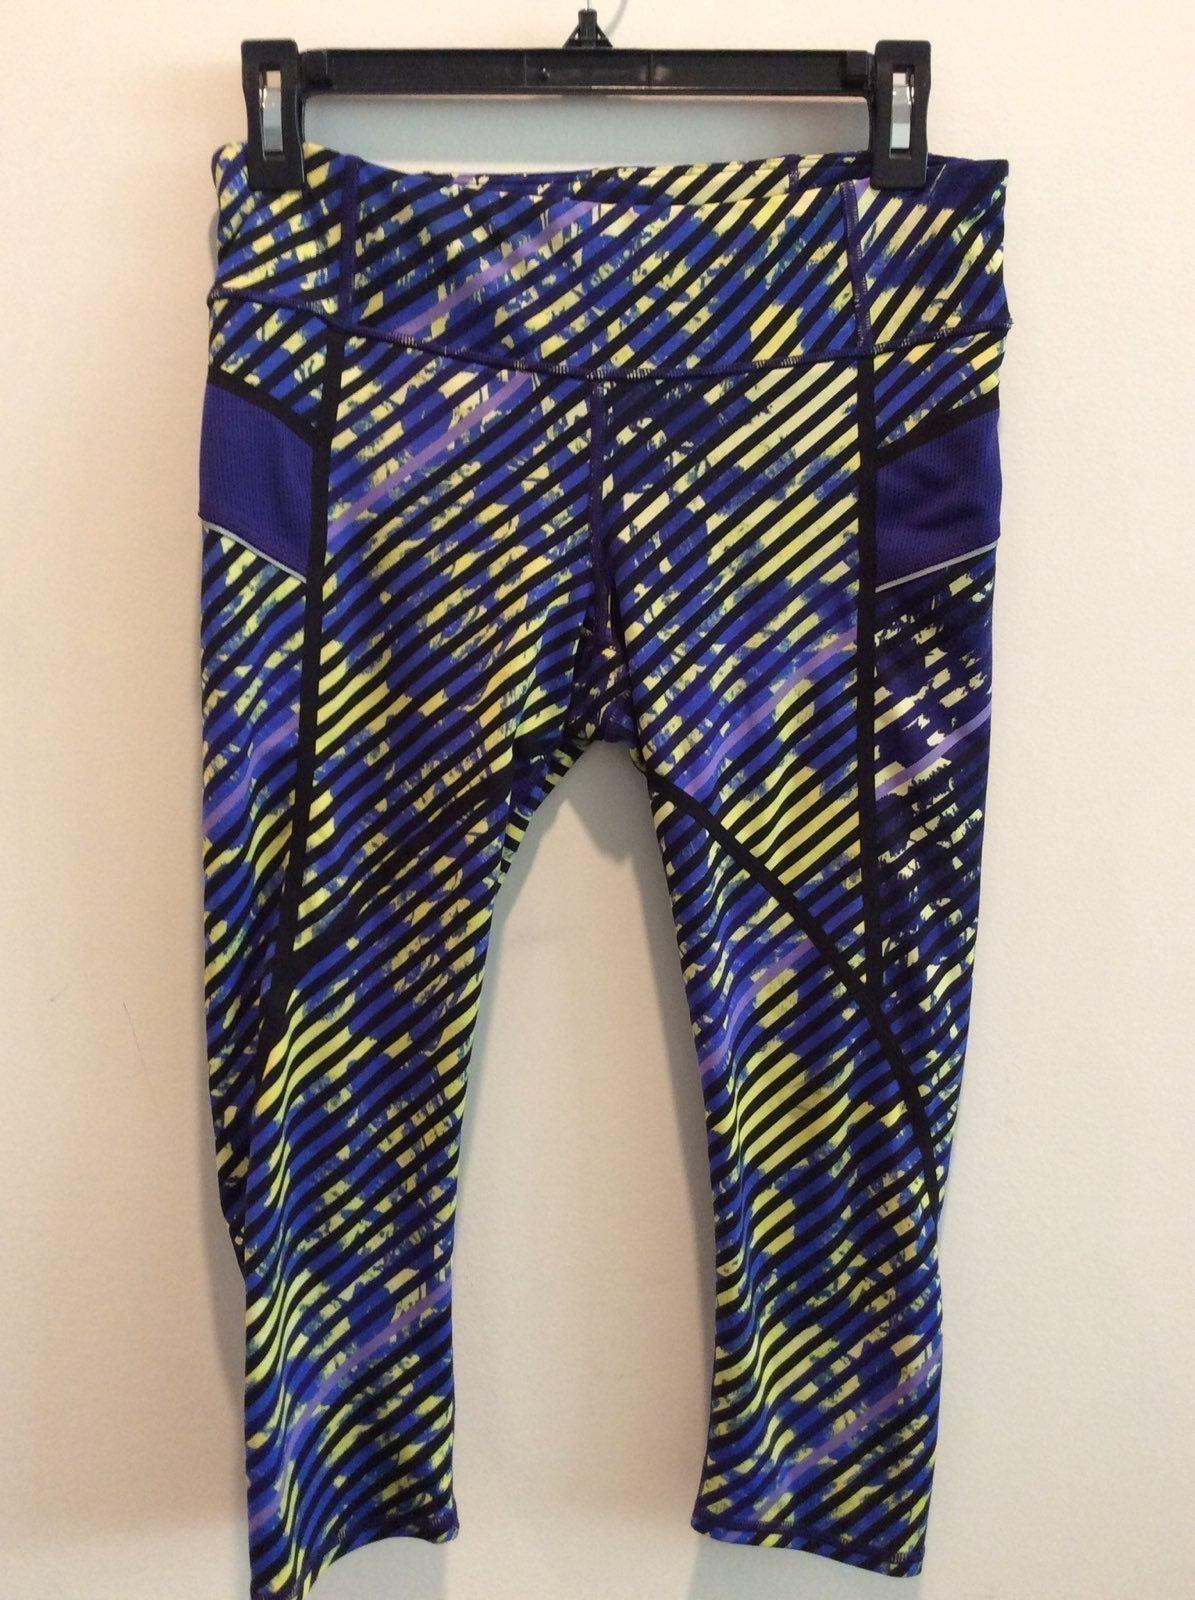 ATHLETA WOMAN'S CROP LEGGINGS SIZE S